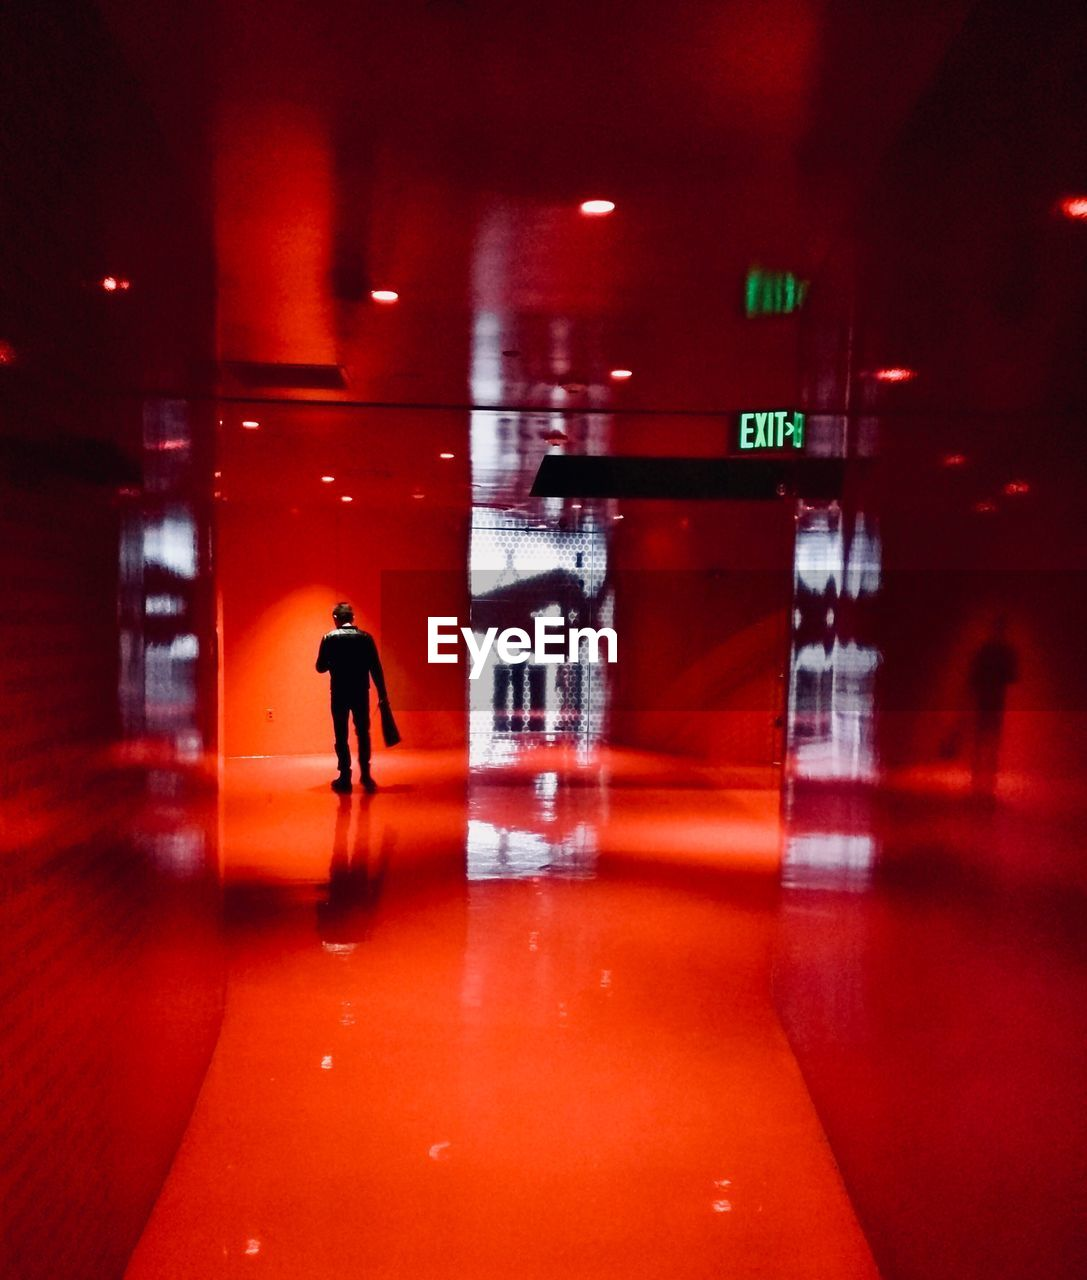 illuminated, real people, text, silhouette, one person, architecture, night, reflection, full length, walking, indoors, lifestyles, communication, built structure, men, people